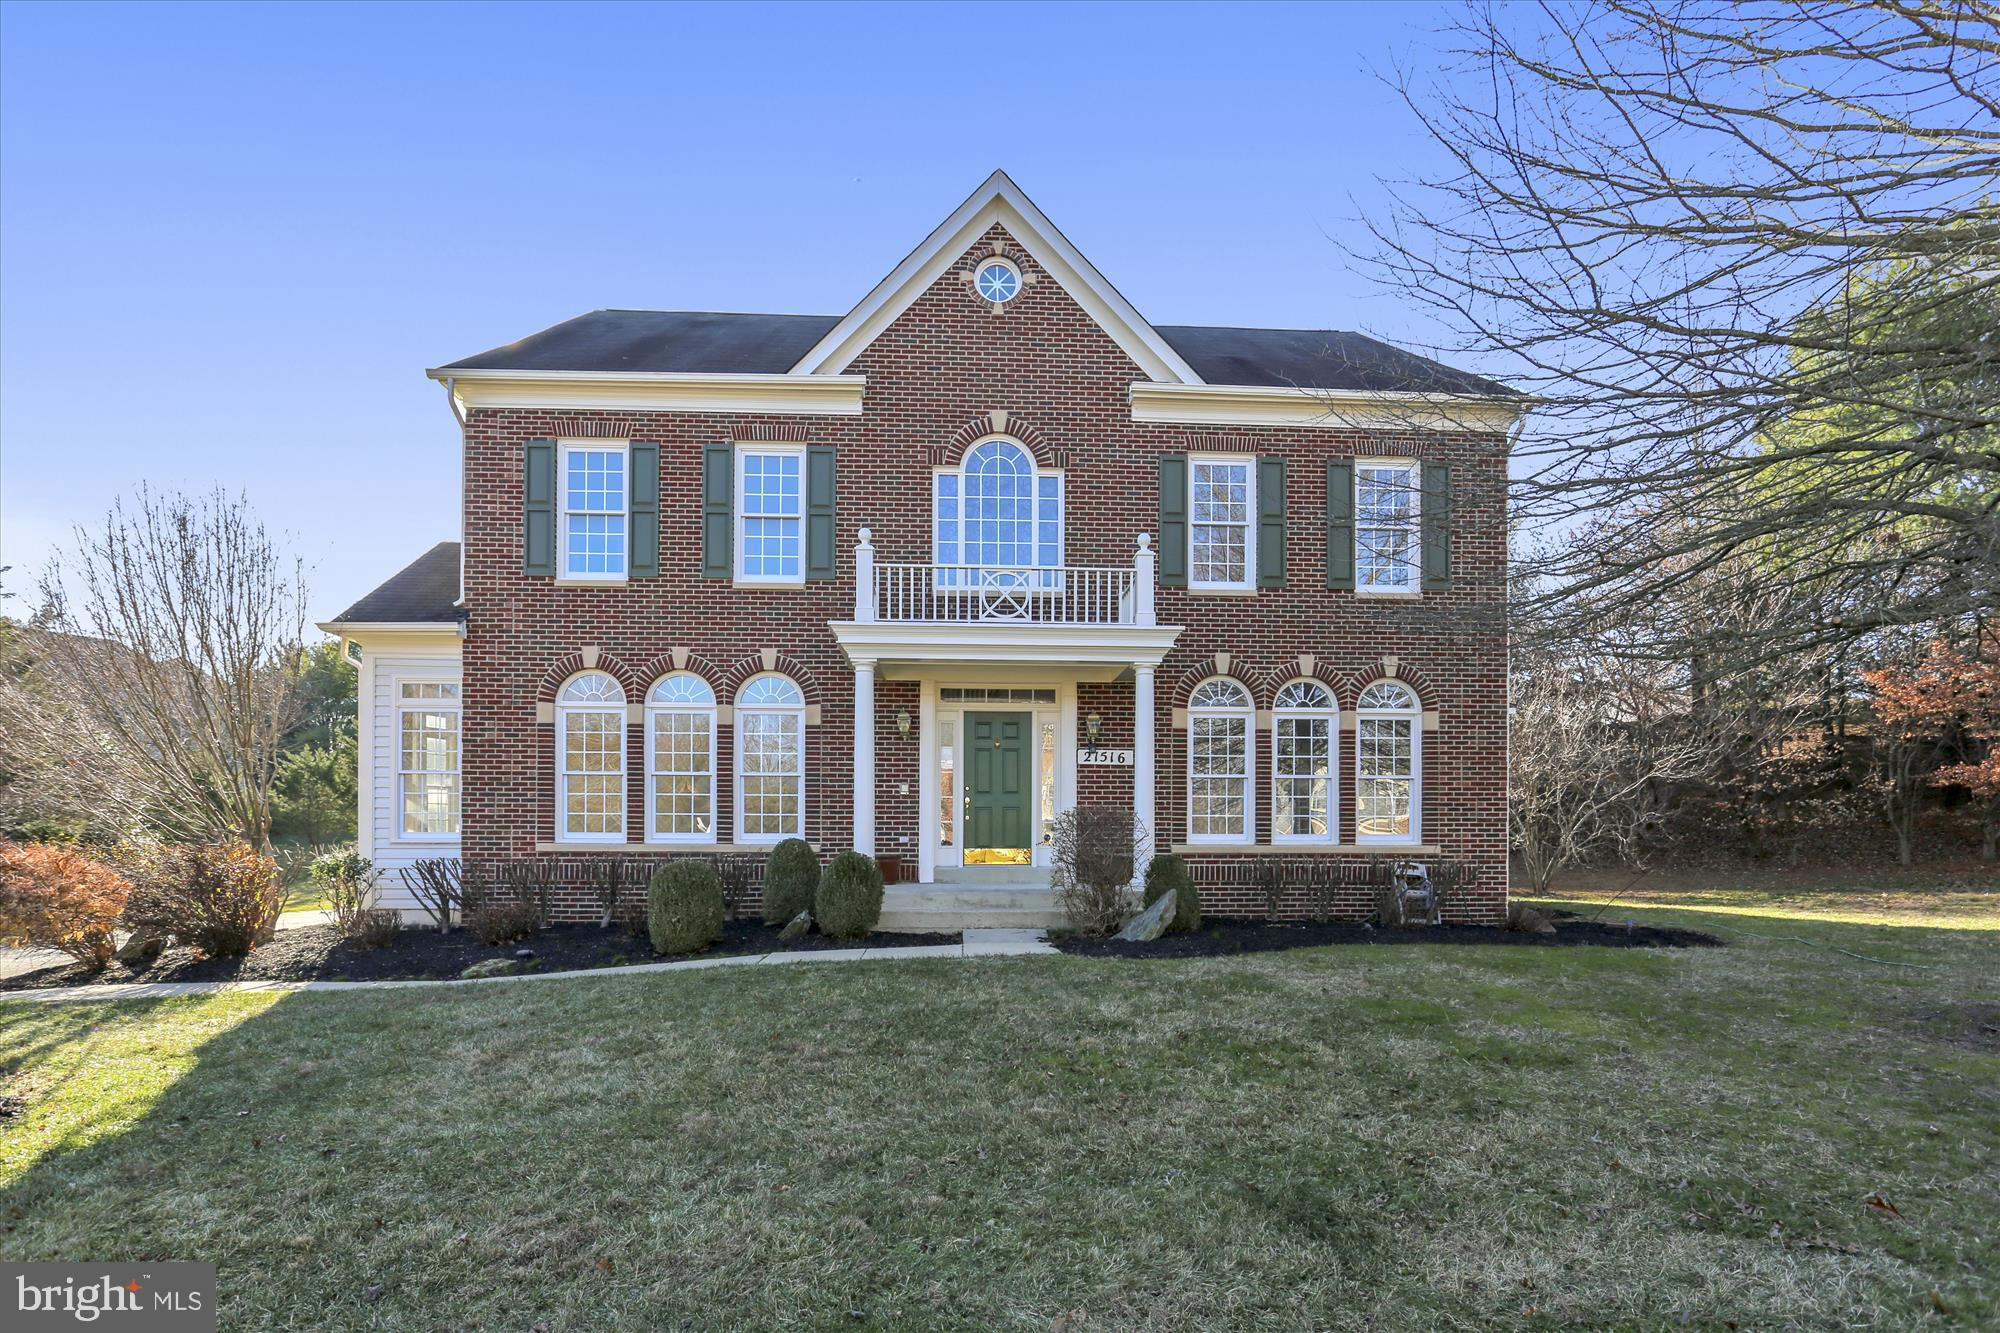 21516 WATERS DISCOVERY TERRACE, GERMANTOWN, MD 20876